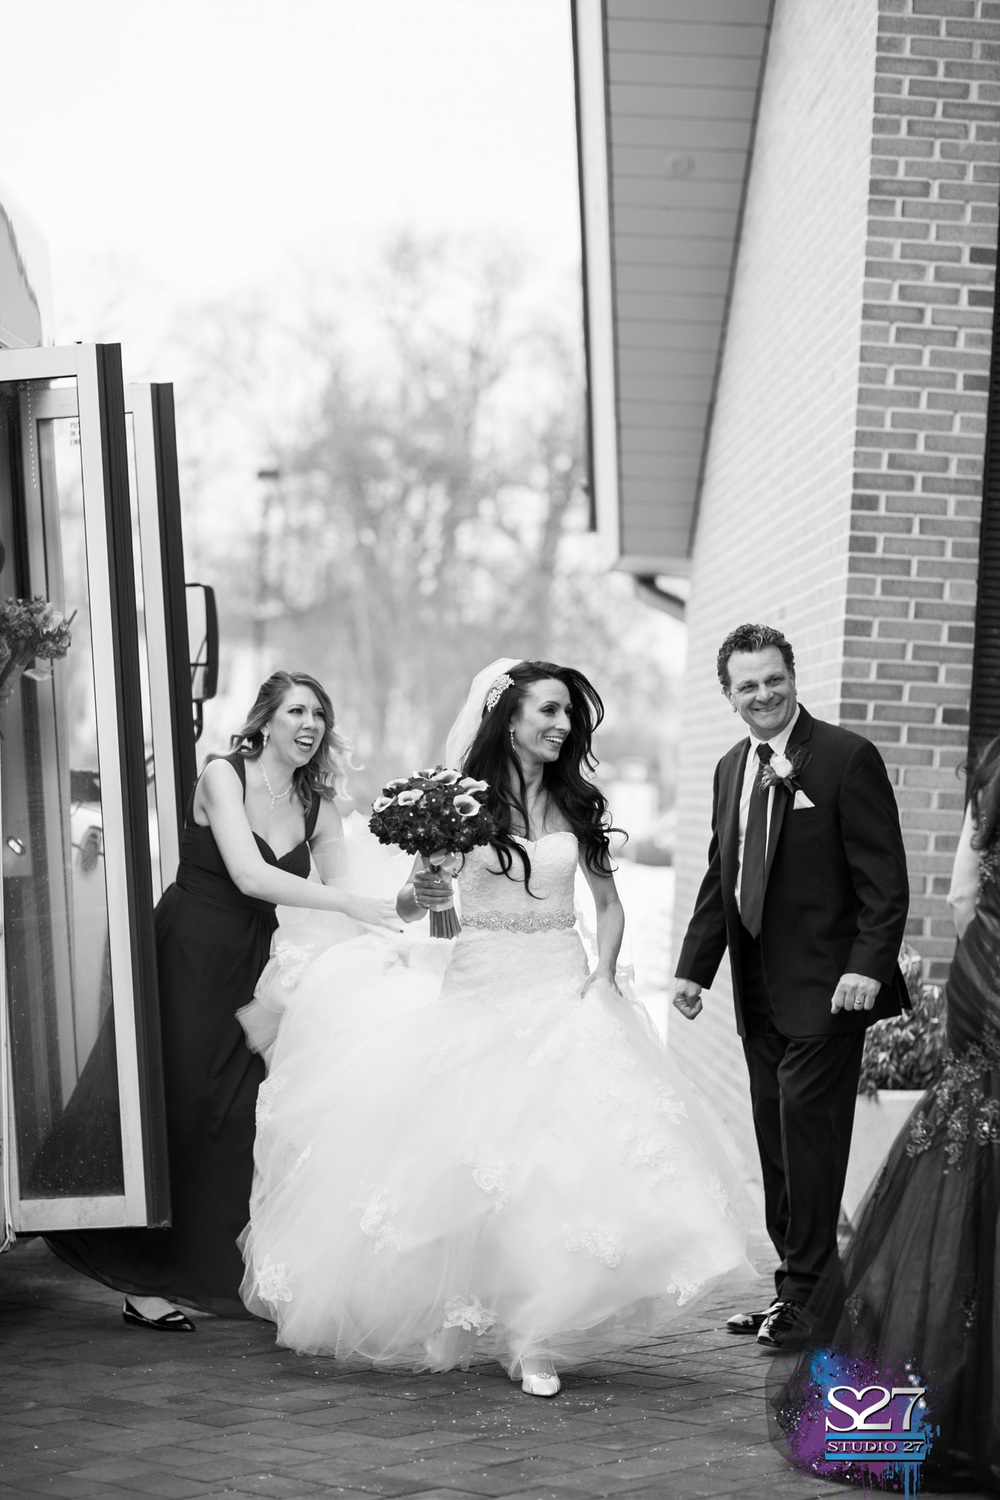 North Ritz Wedding Photos  (11 of 57).jpg